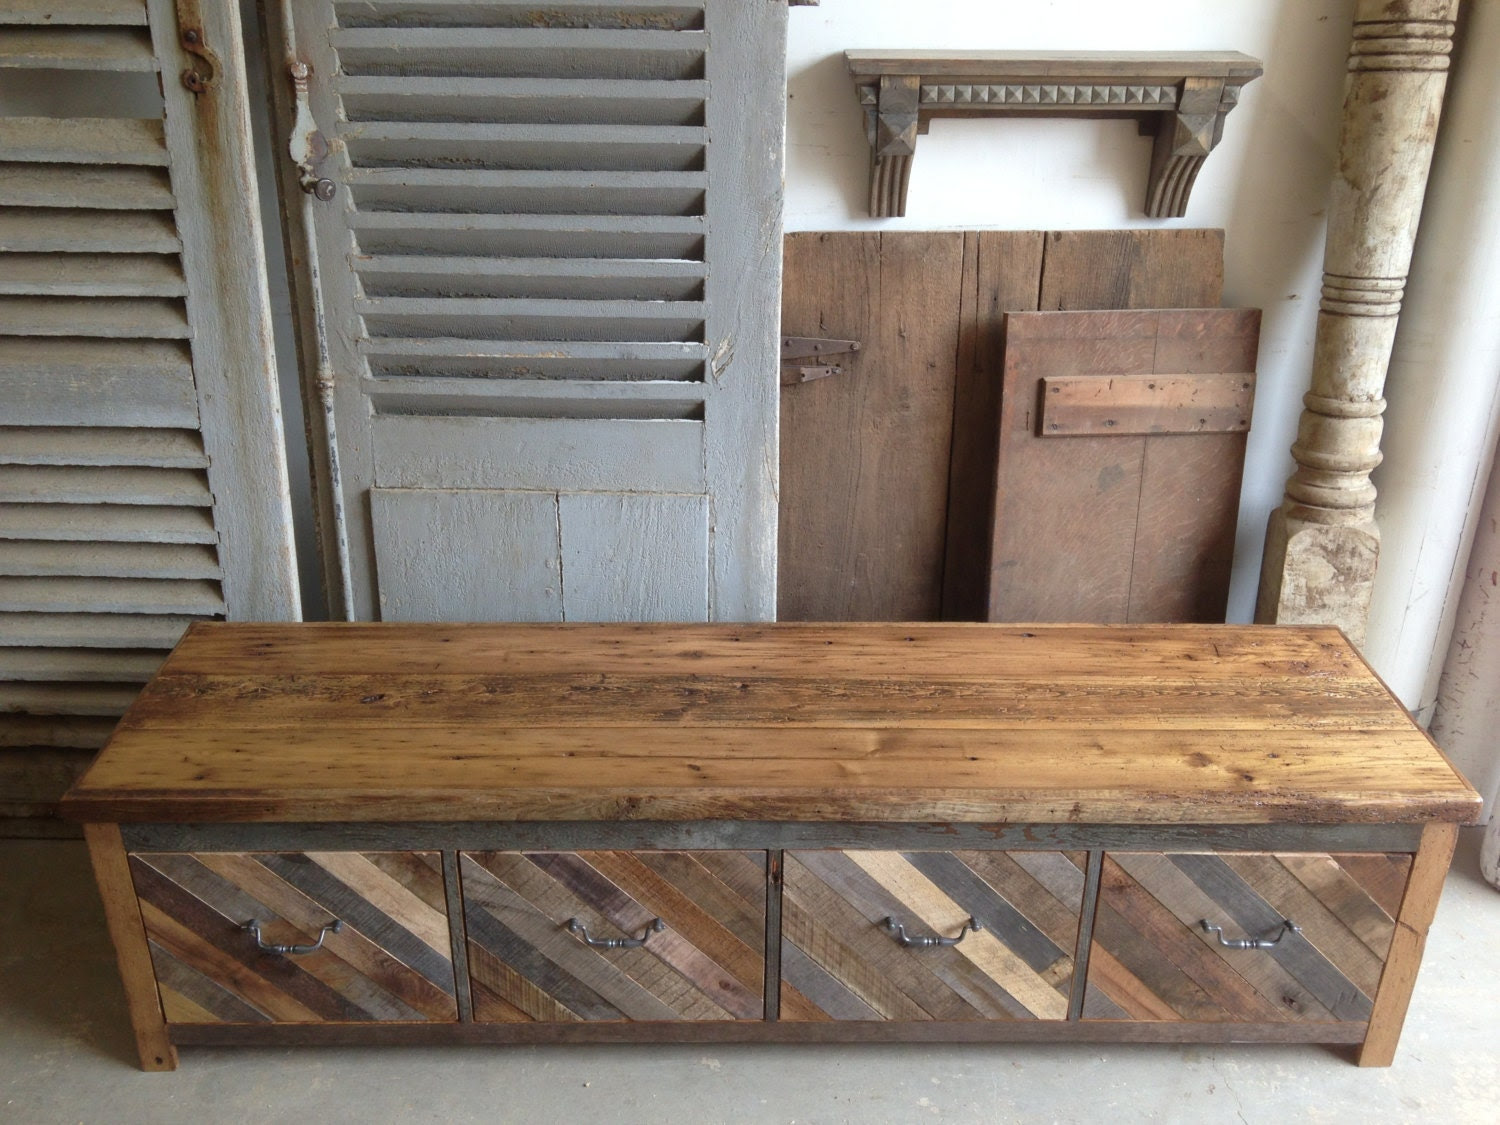 Popular items for mud room benches on Etsy